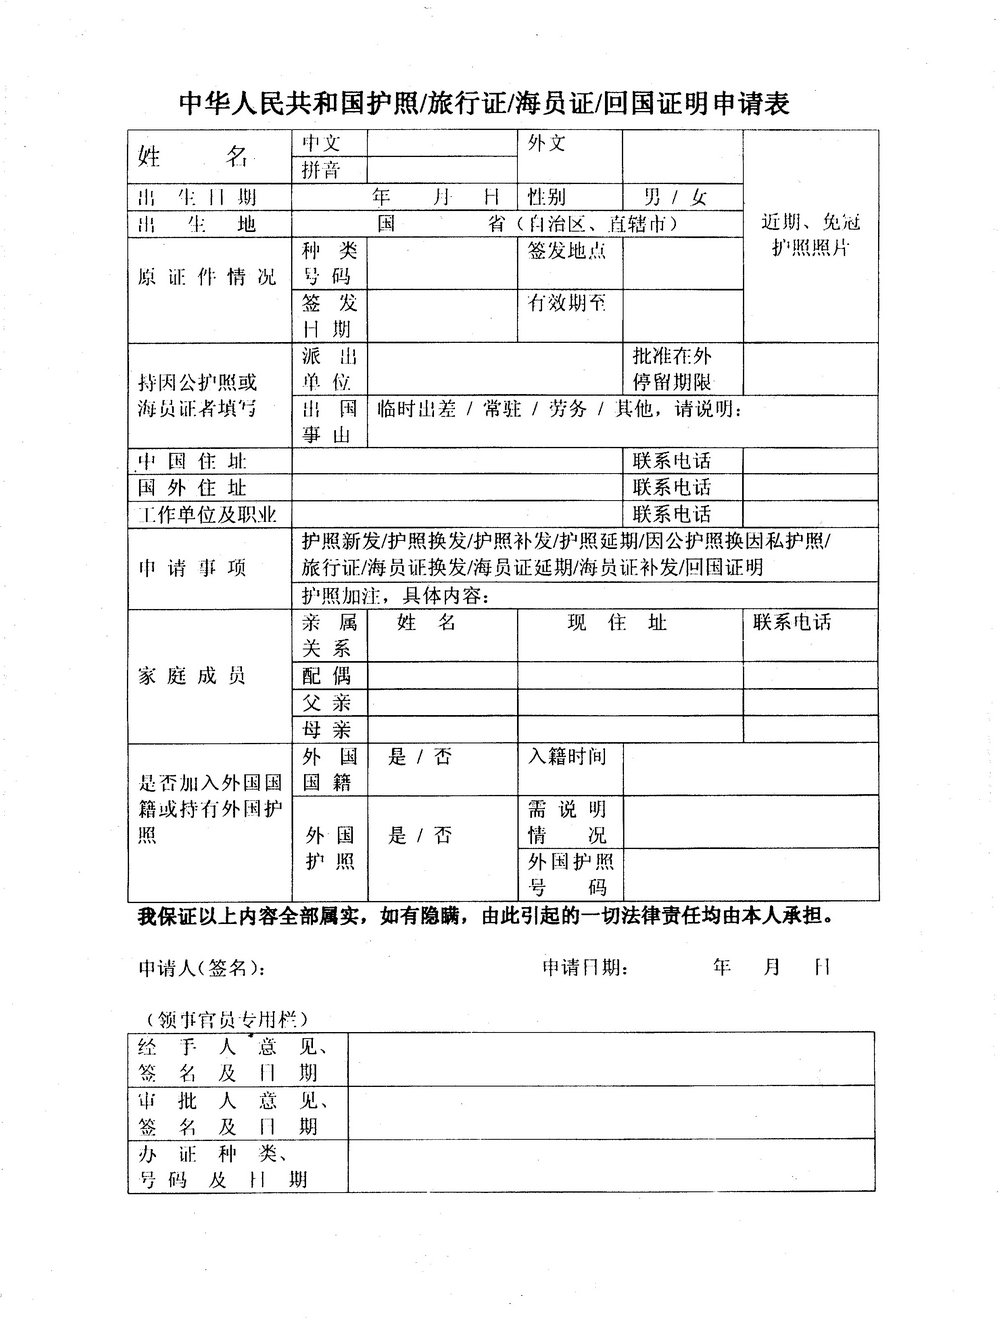 Chinese Visa Application Form V.2013